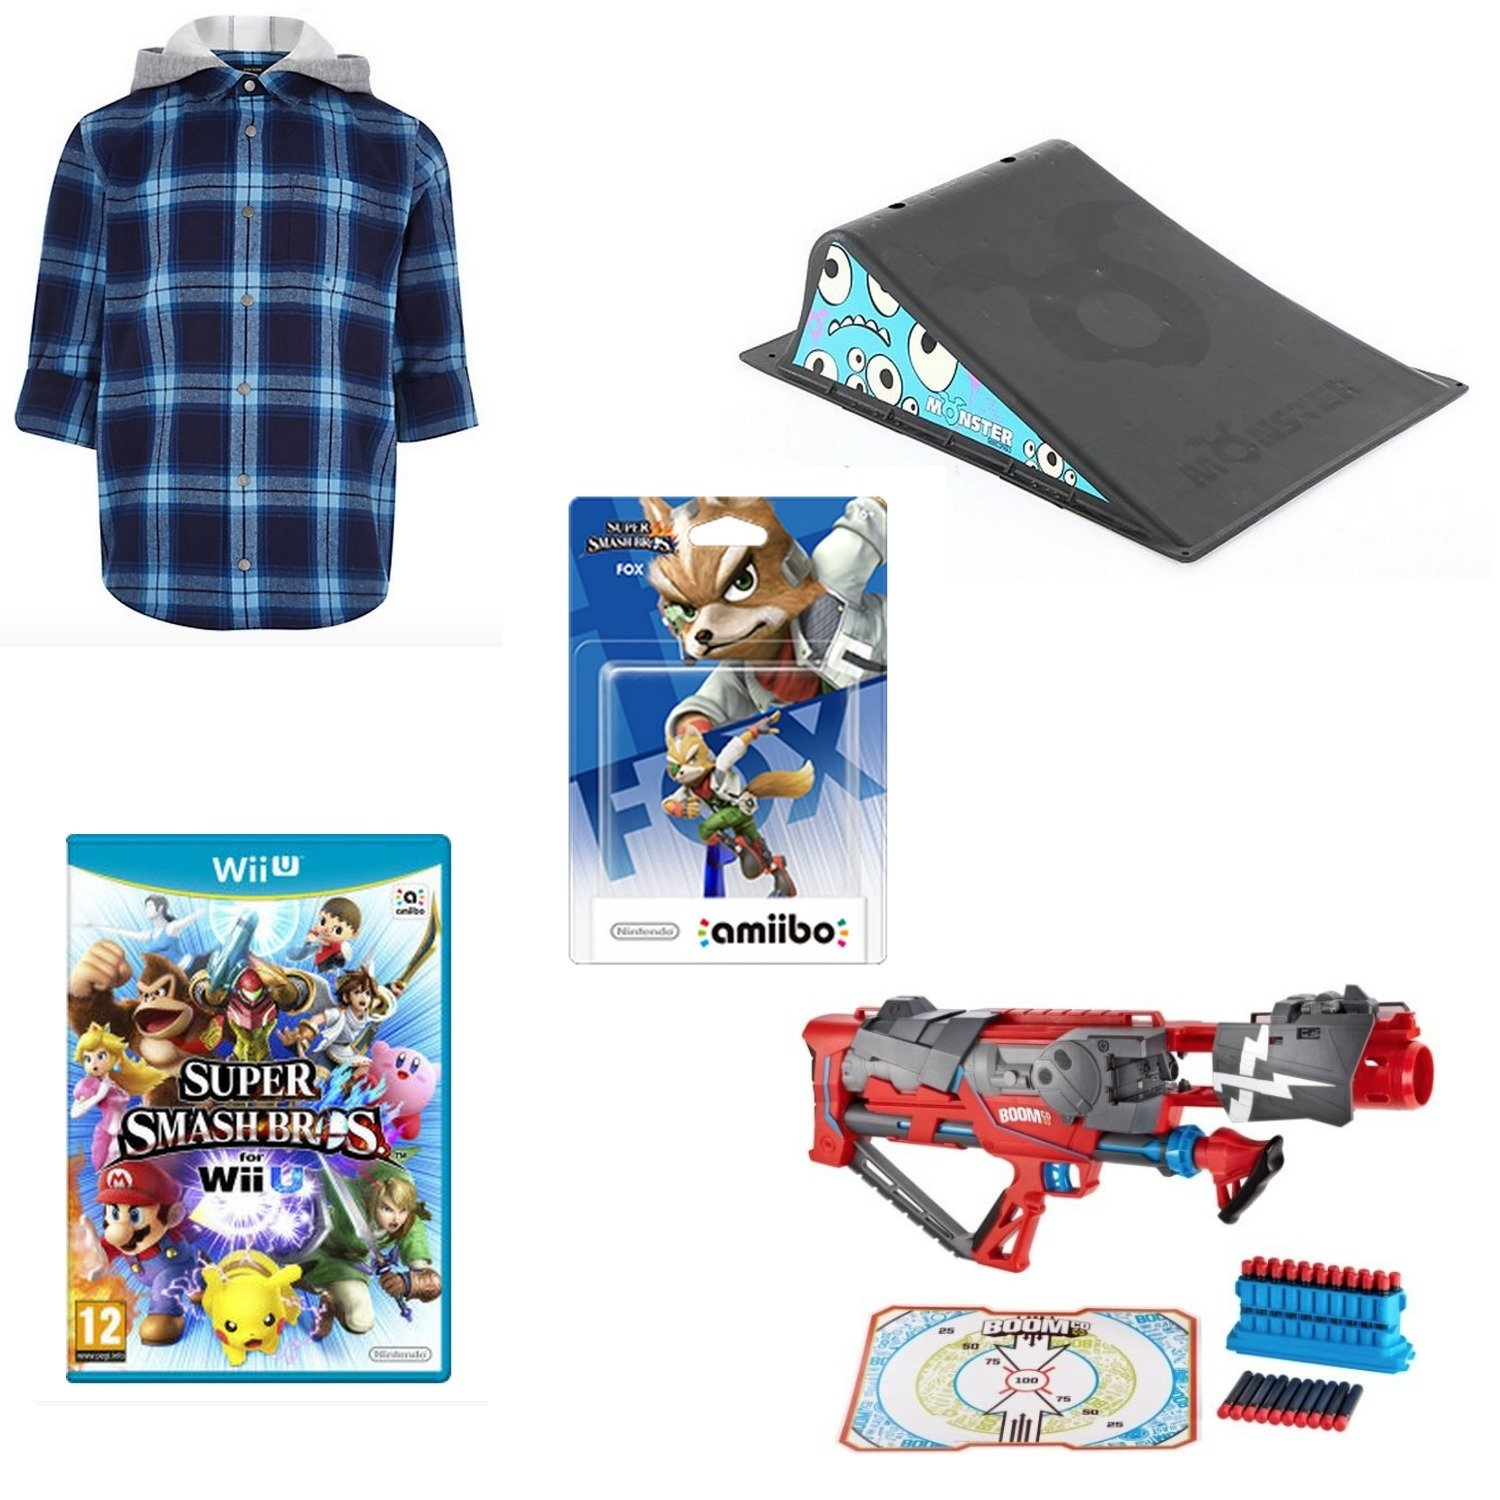 10 Amazing Christmas Gift Ideas For 10 Year Old Boy christmas gifts for 10 year old boys family four fun 4 2020